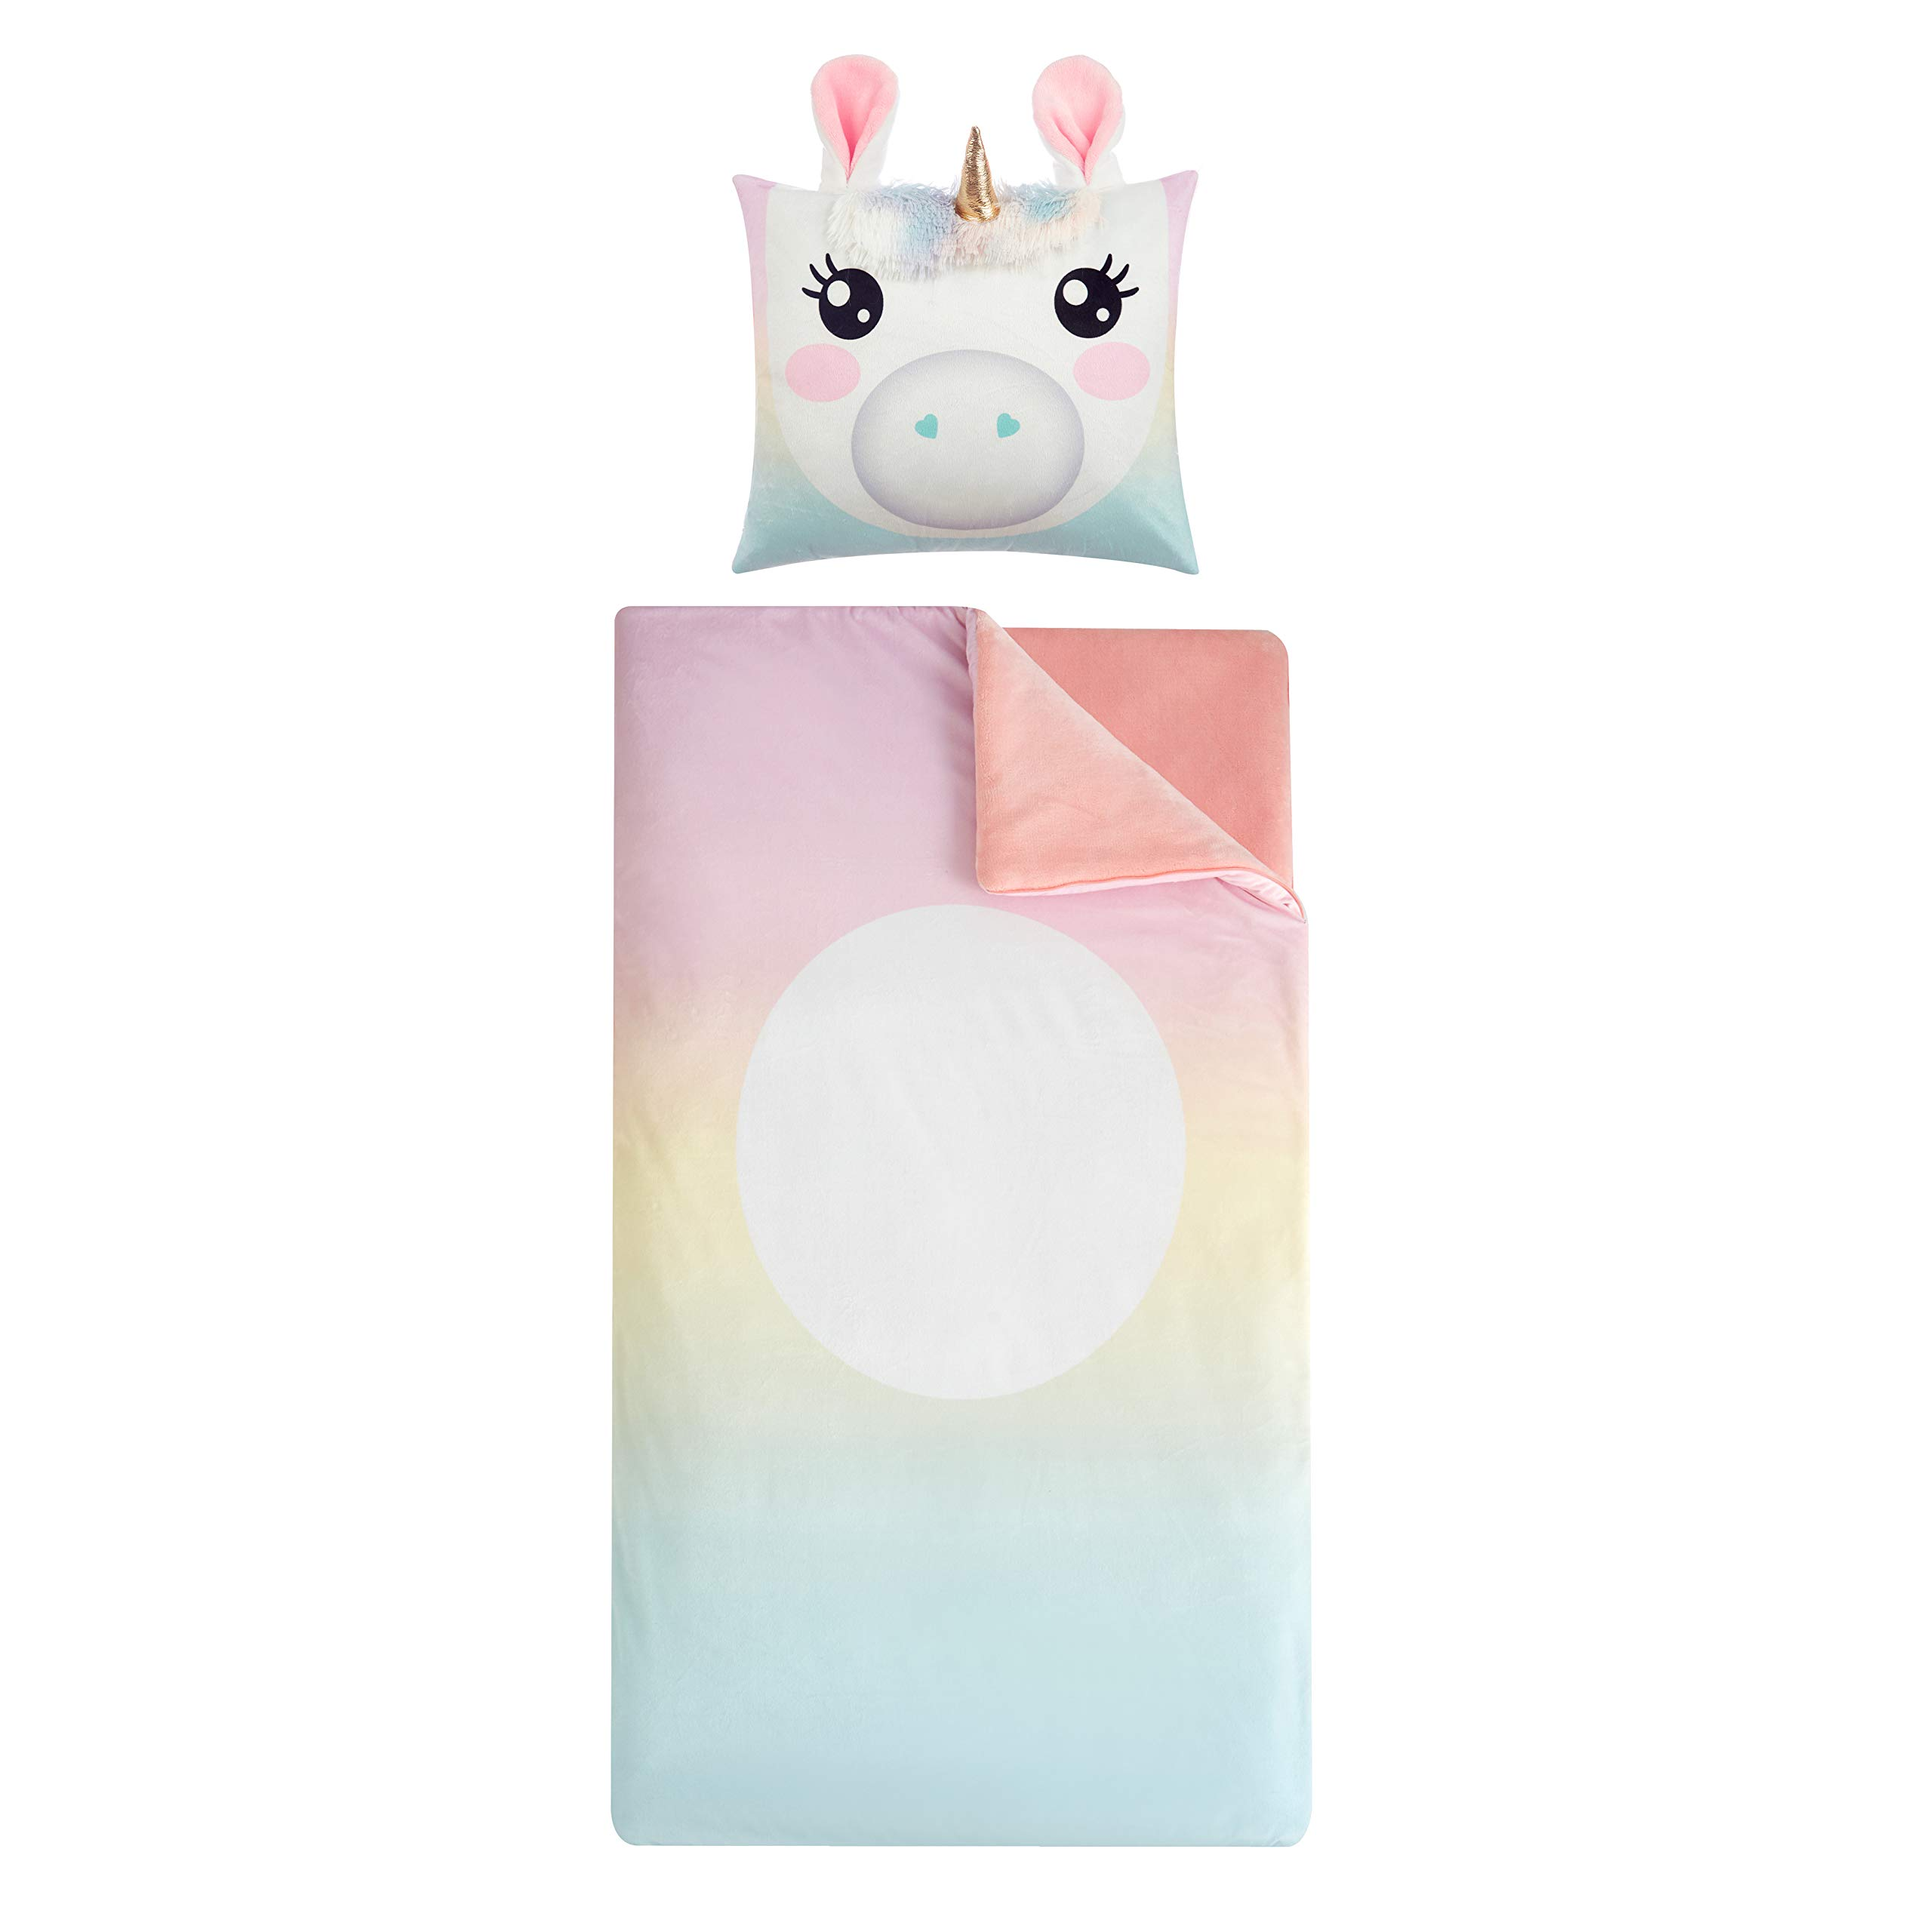 Heritage Kids Unicorn Sleeping Sac with Pillow